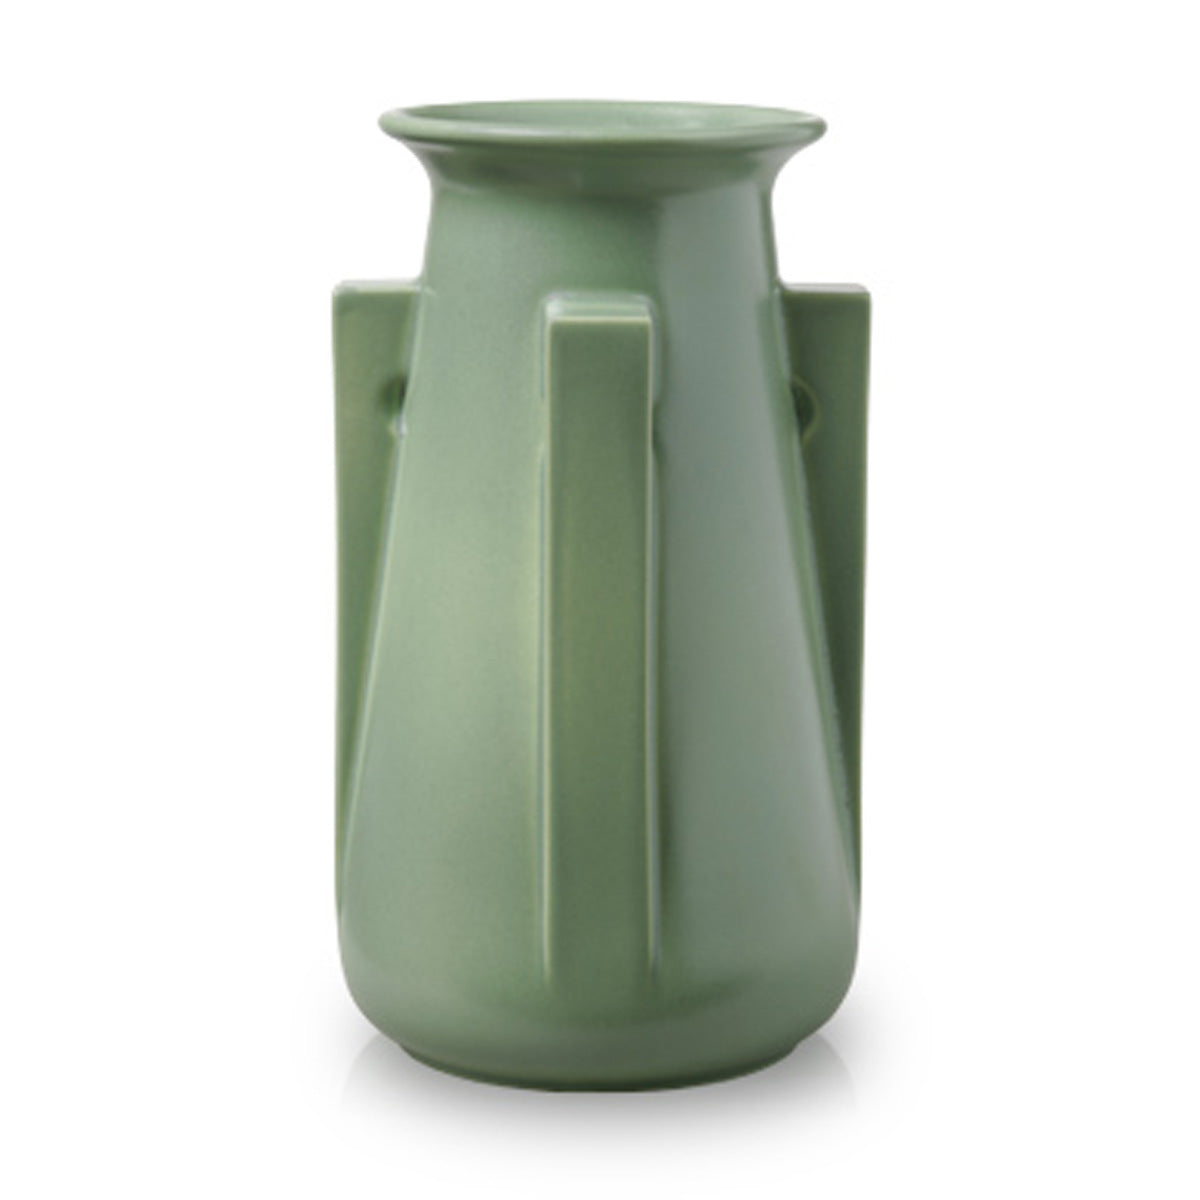 <p>The Teco (an abbreviation of TErra Cotta) Art Pottery Collection is hand crafted and hand glazed with each high quality reproduction maintaining the integrity of it's original pottery design.</p>